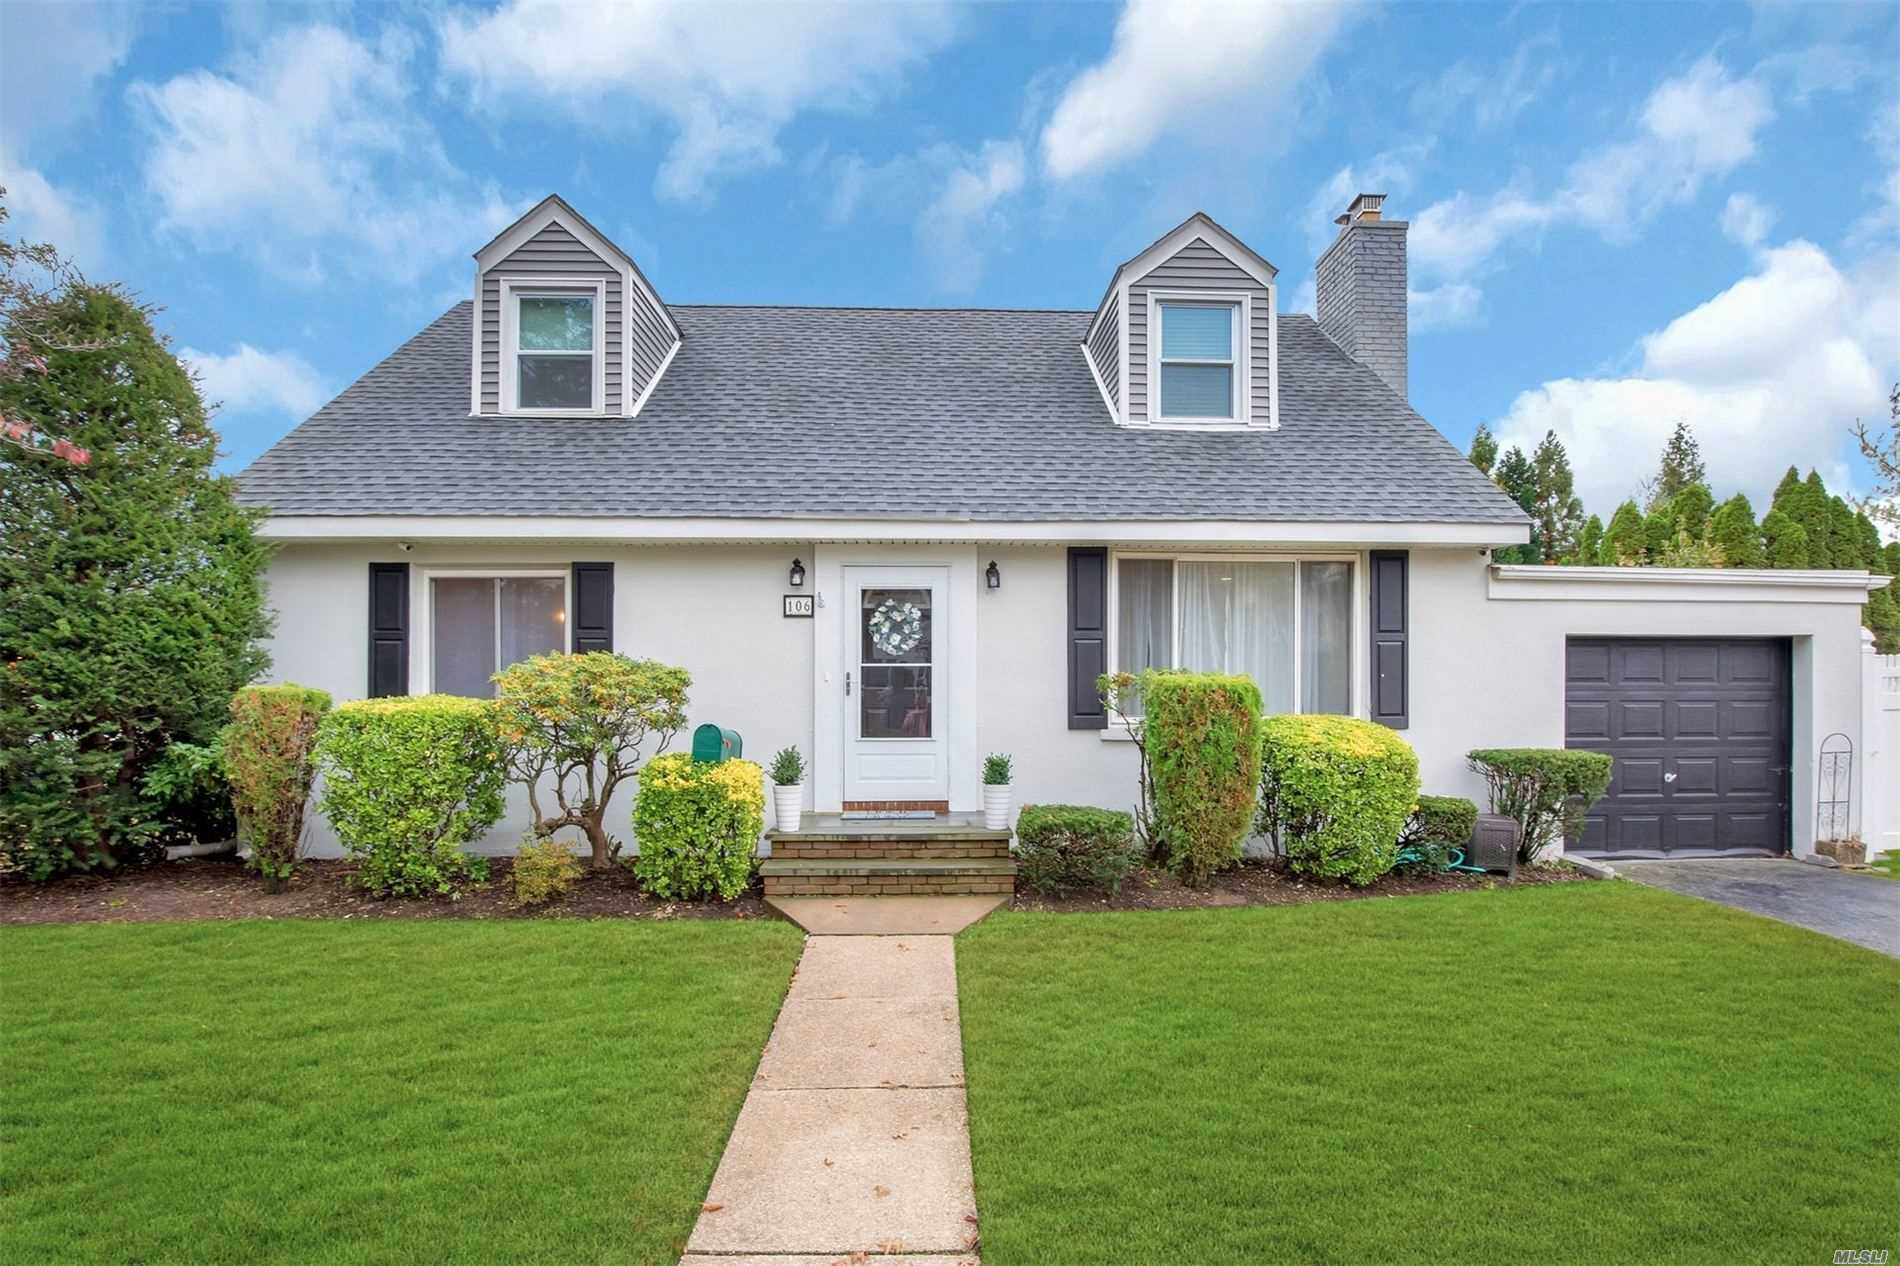 . Move in ready. Bright, open concept, built-ins, hardwood flooring, fenced in yard. Full finished basement. Close to LIRR & village shops